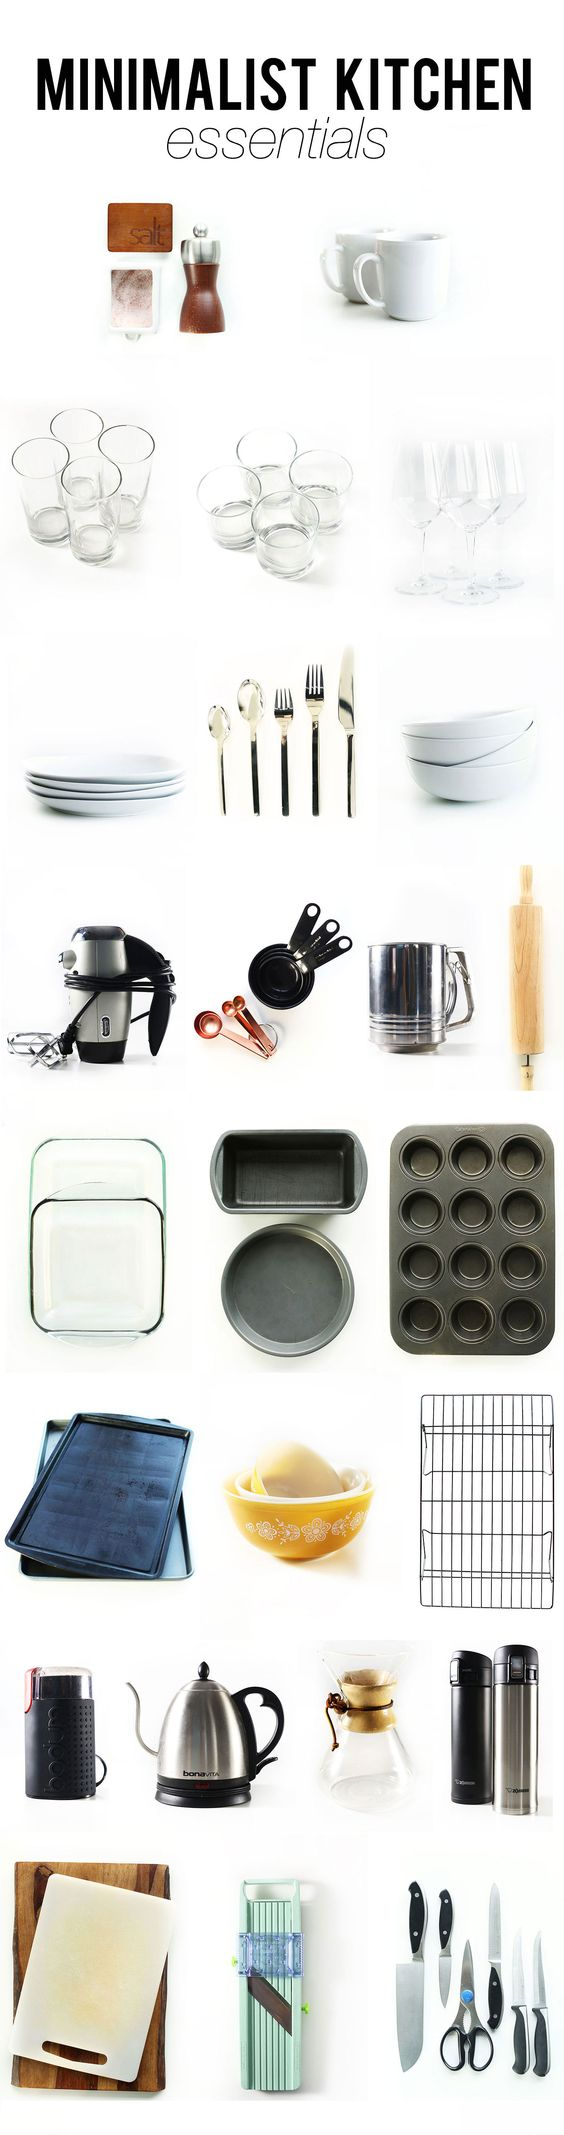 kitchen essentials minimalist kitchen and kitchens on